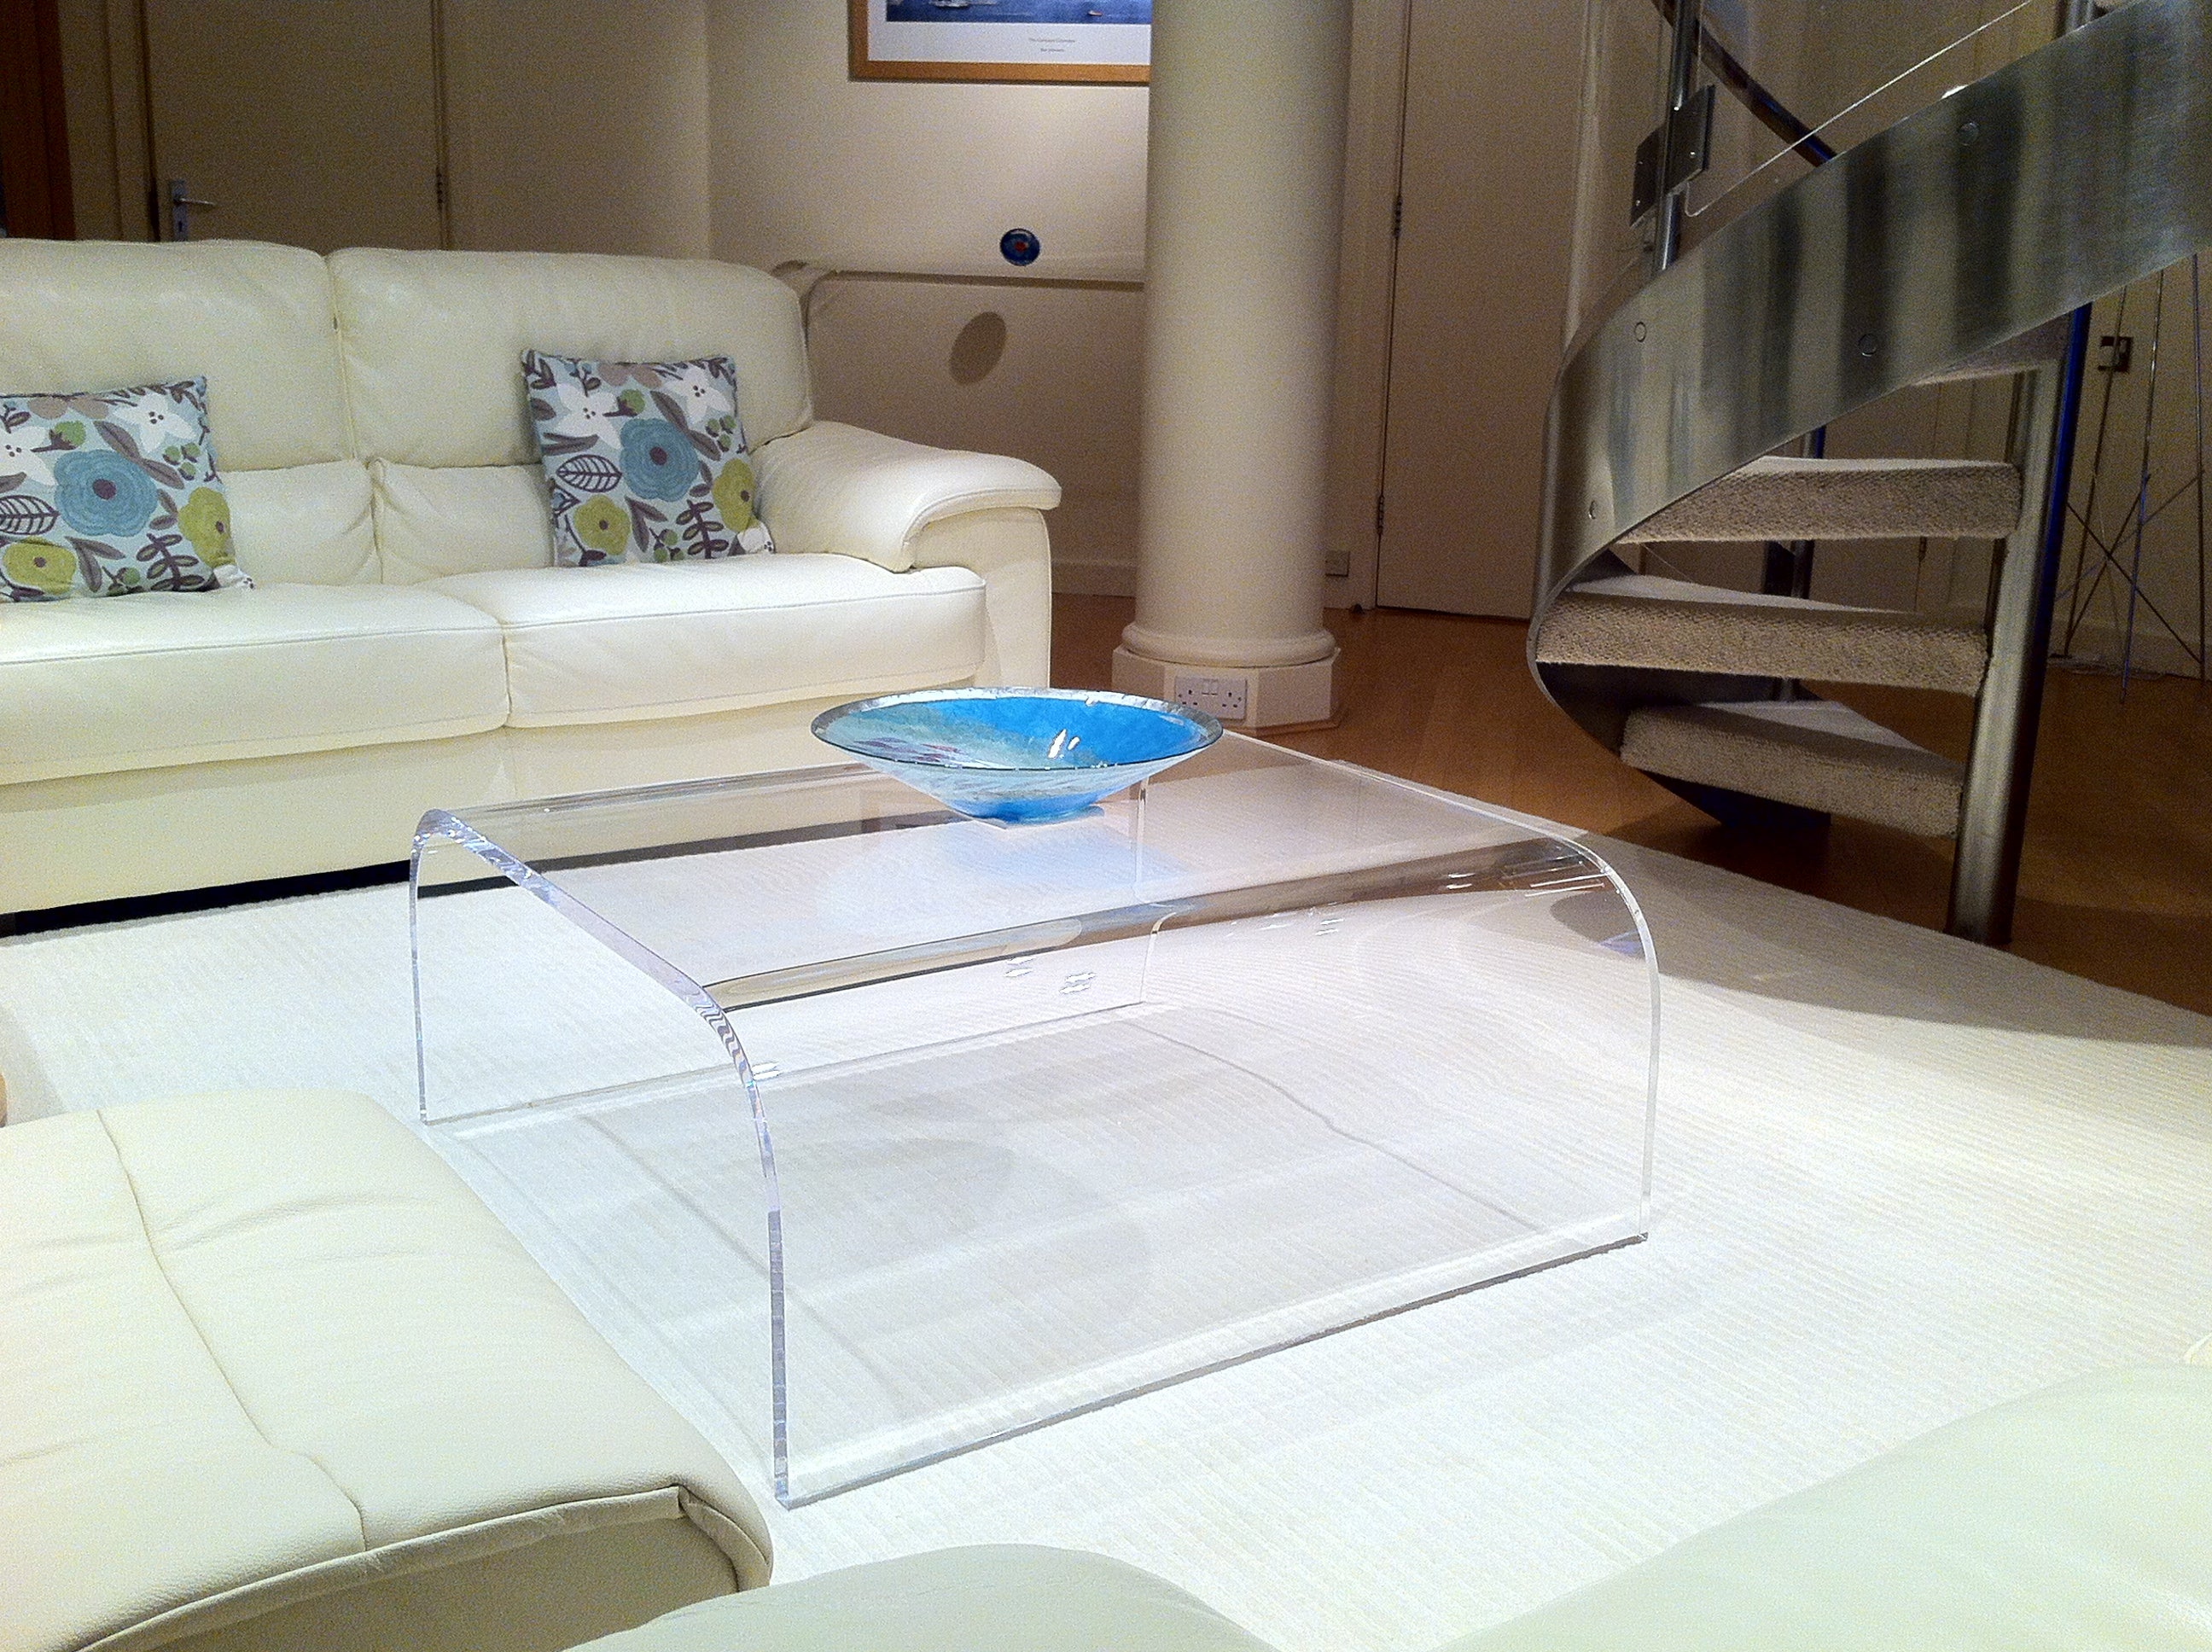 - Ralph Marks Perspex / Acrylic Furniture UK — Acrylic Coffee Table UK